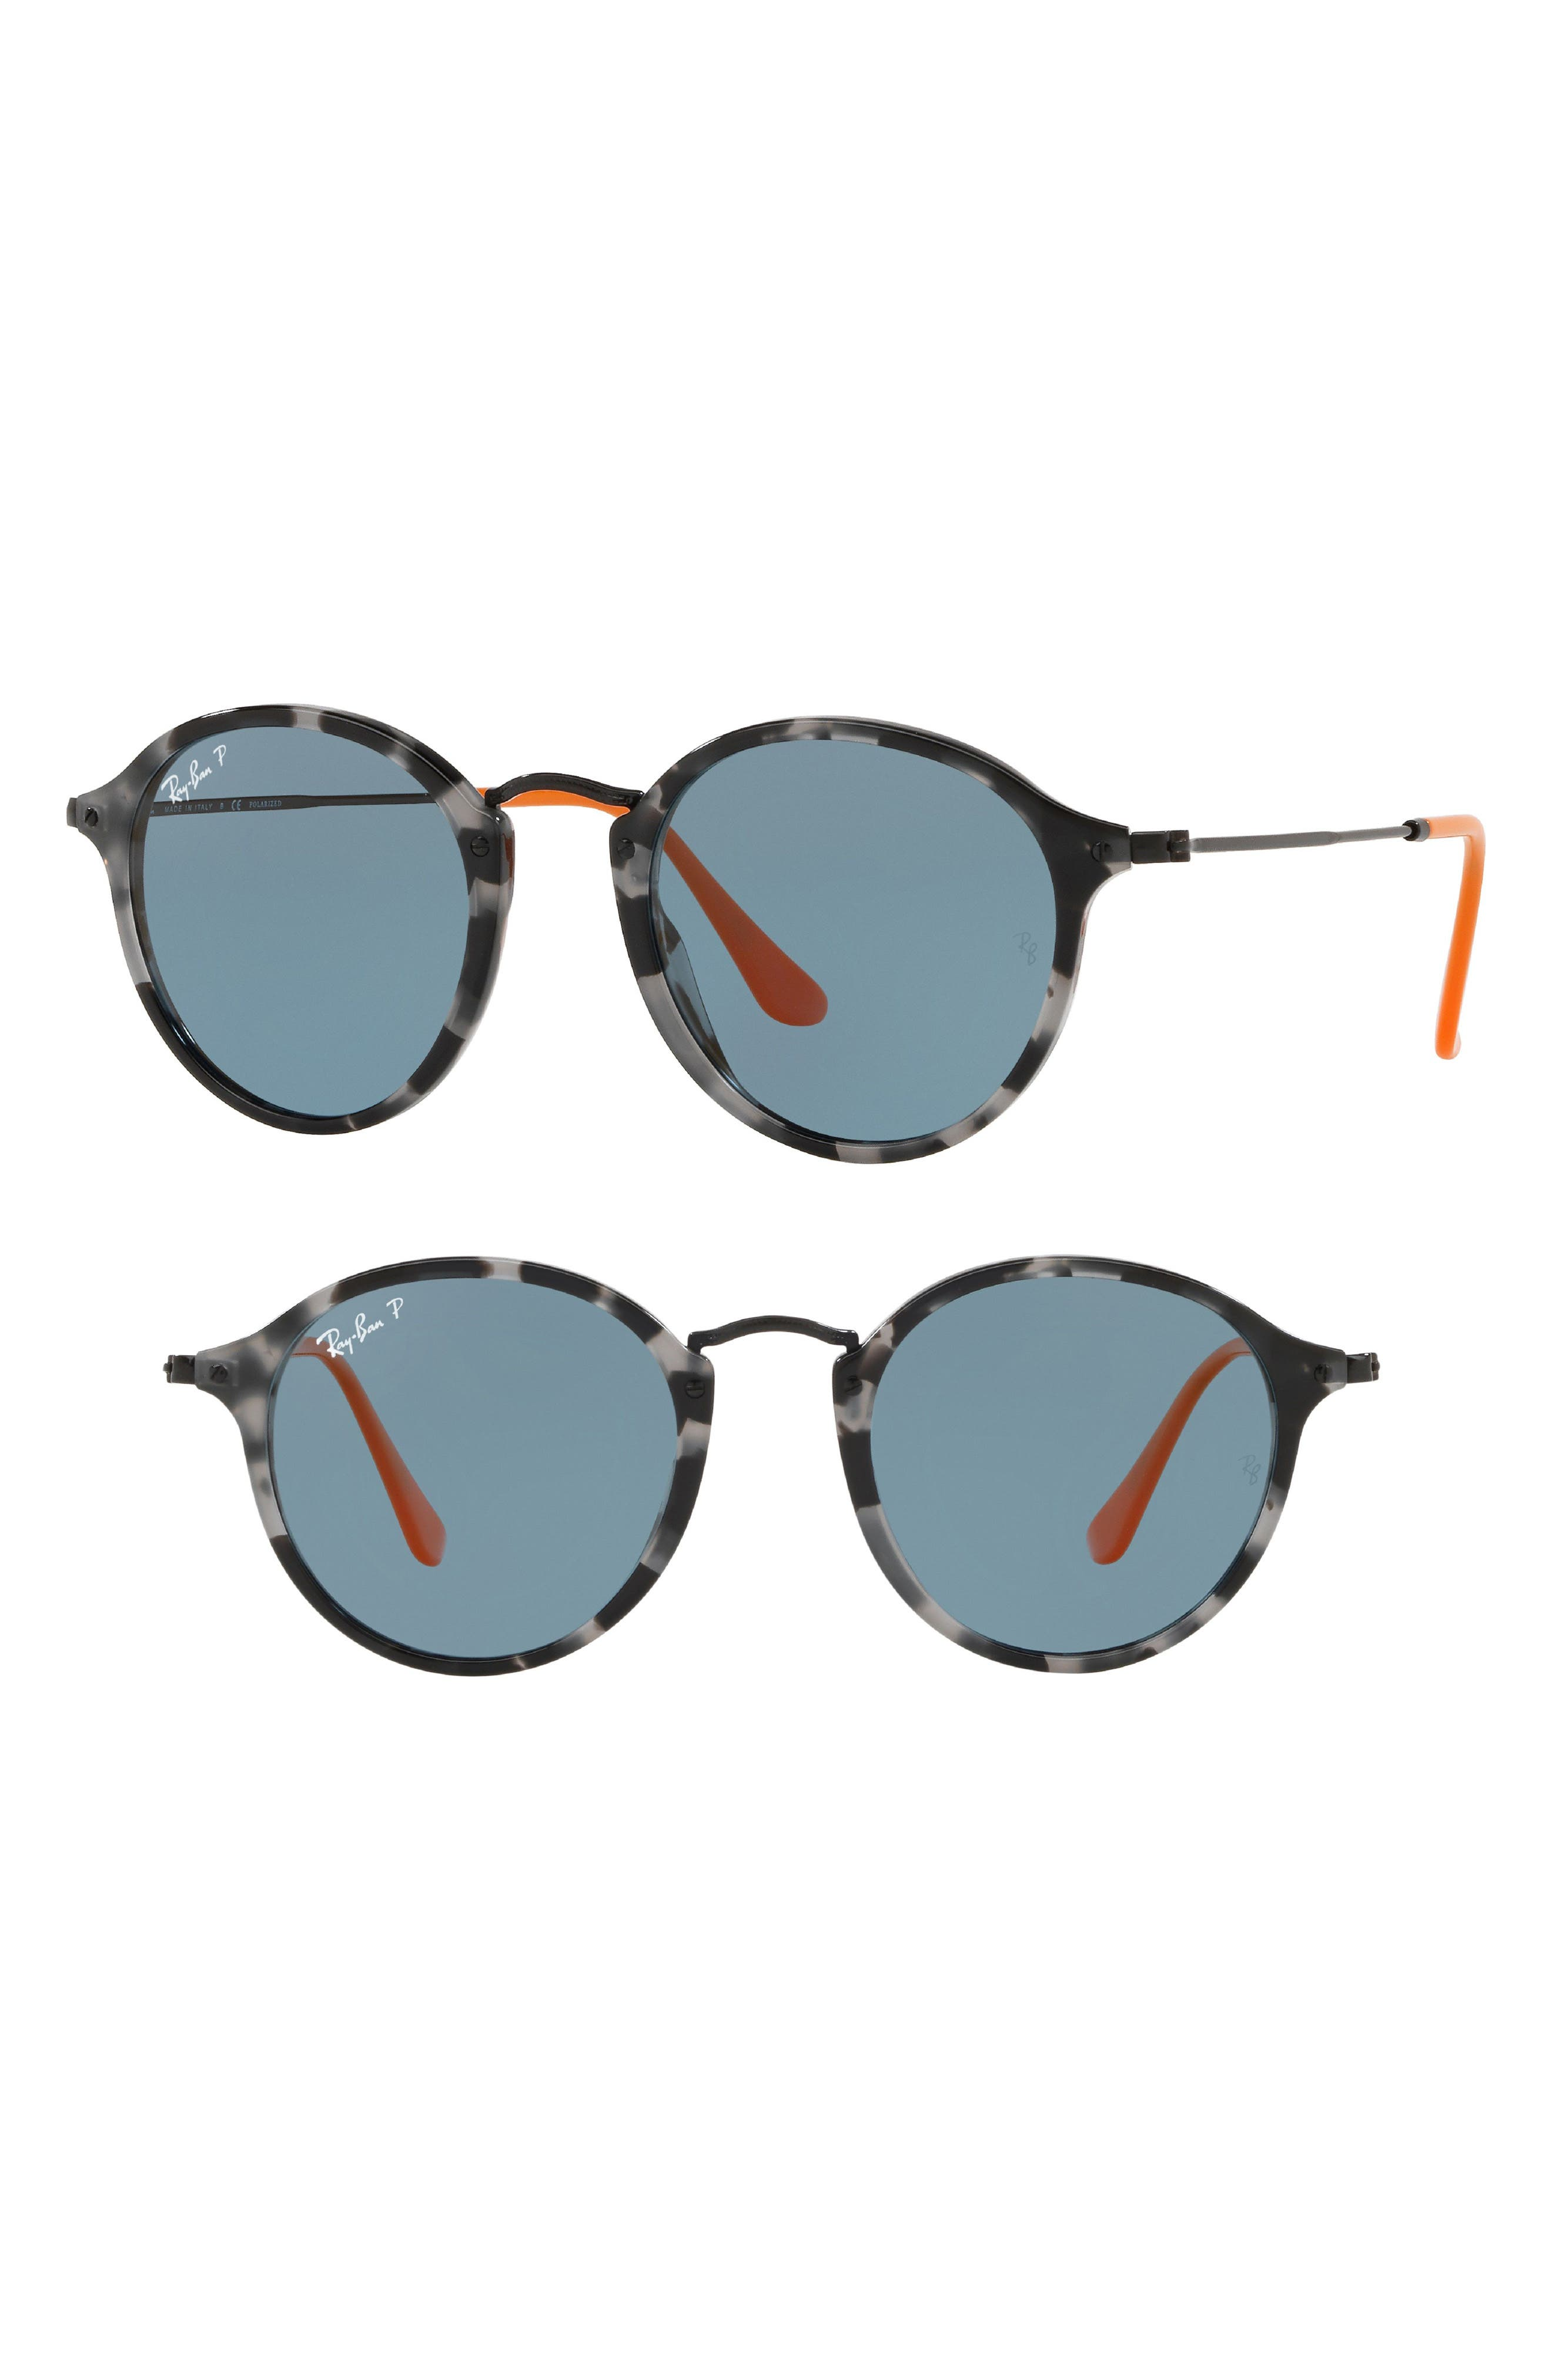 52mm Polarized Round Sunglasses,                             Main thumbnail 1, color,                             Dark Grey Tortoise